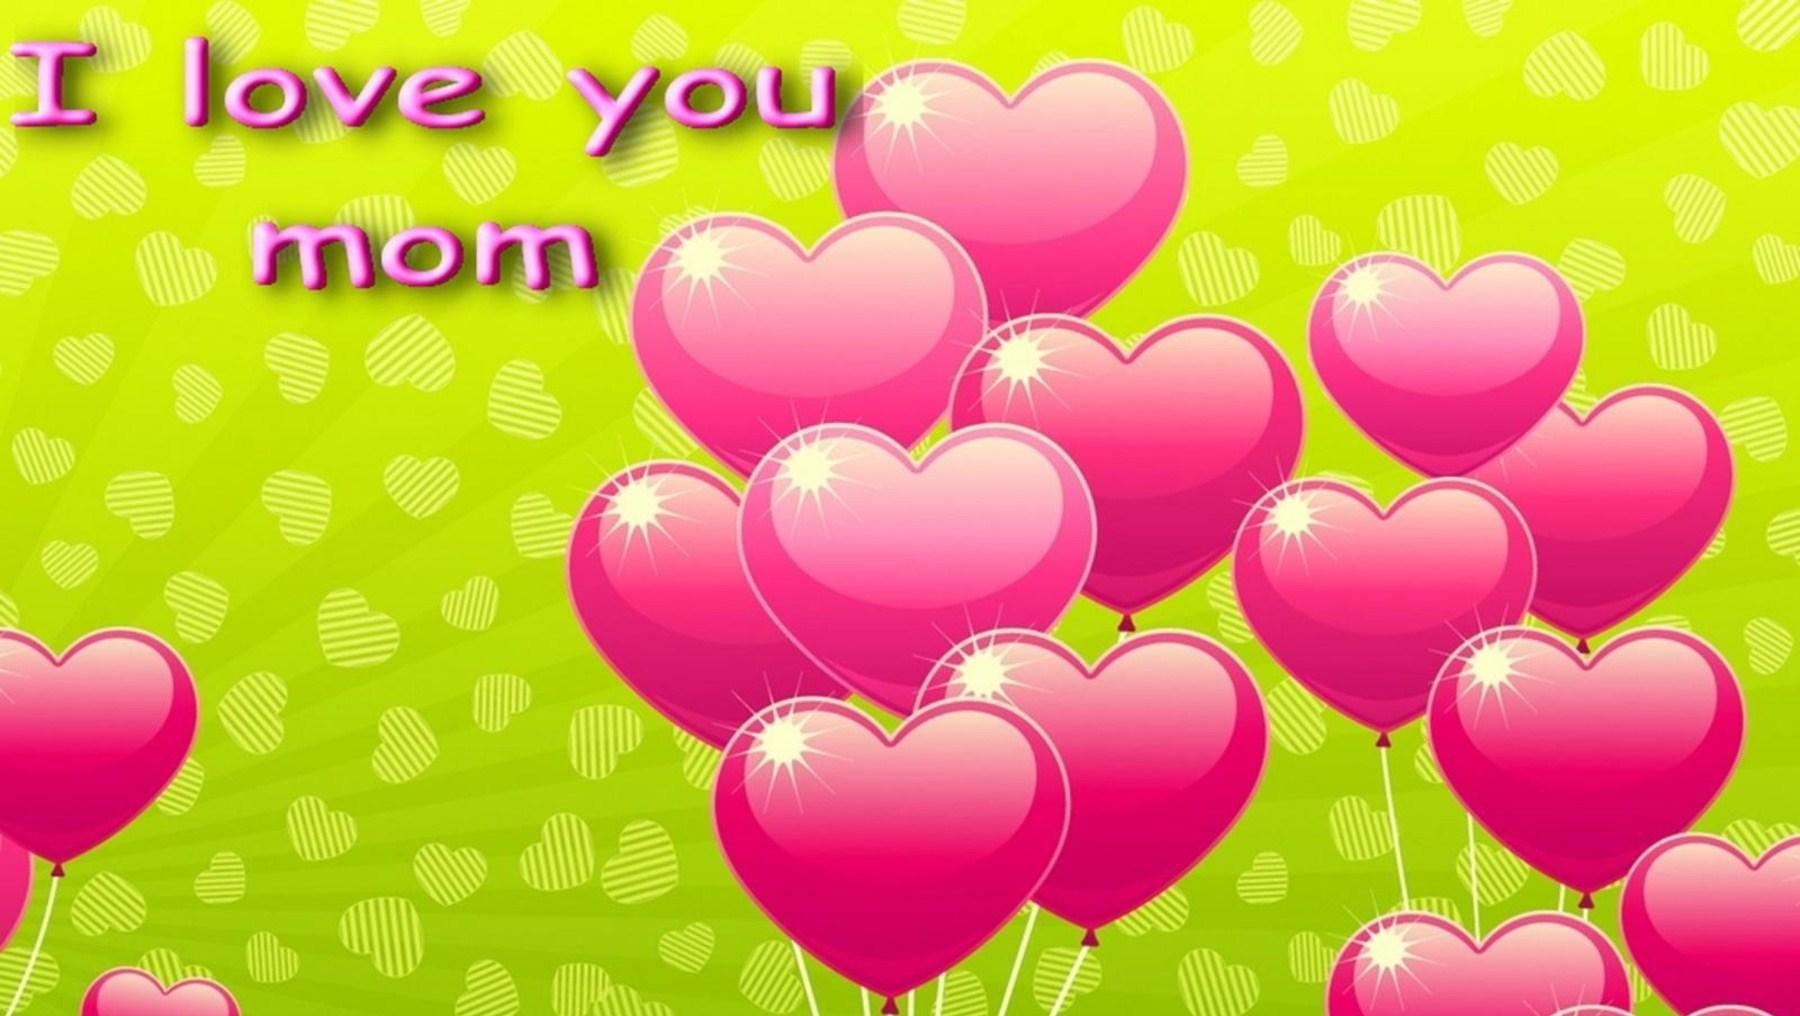 Happy Mothers Day Images Free Download For Facebook